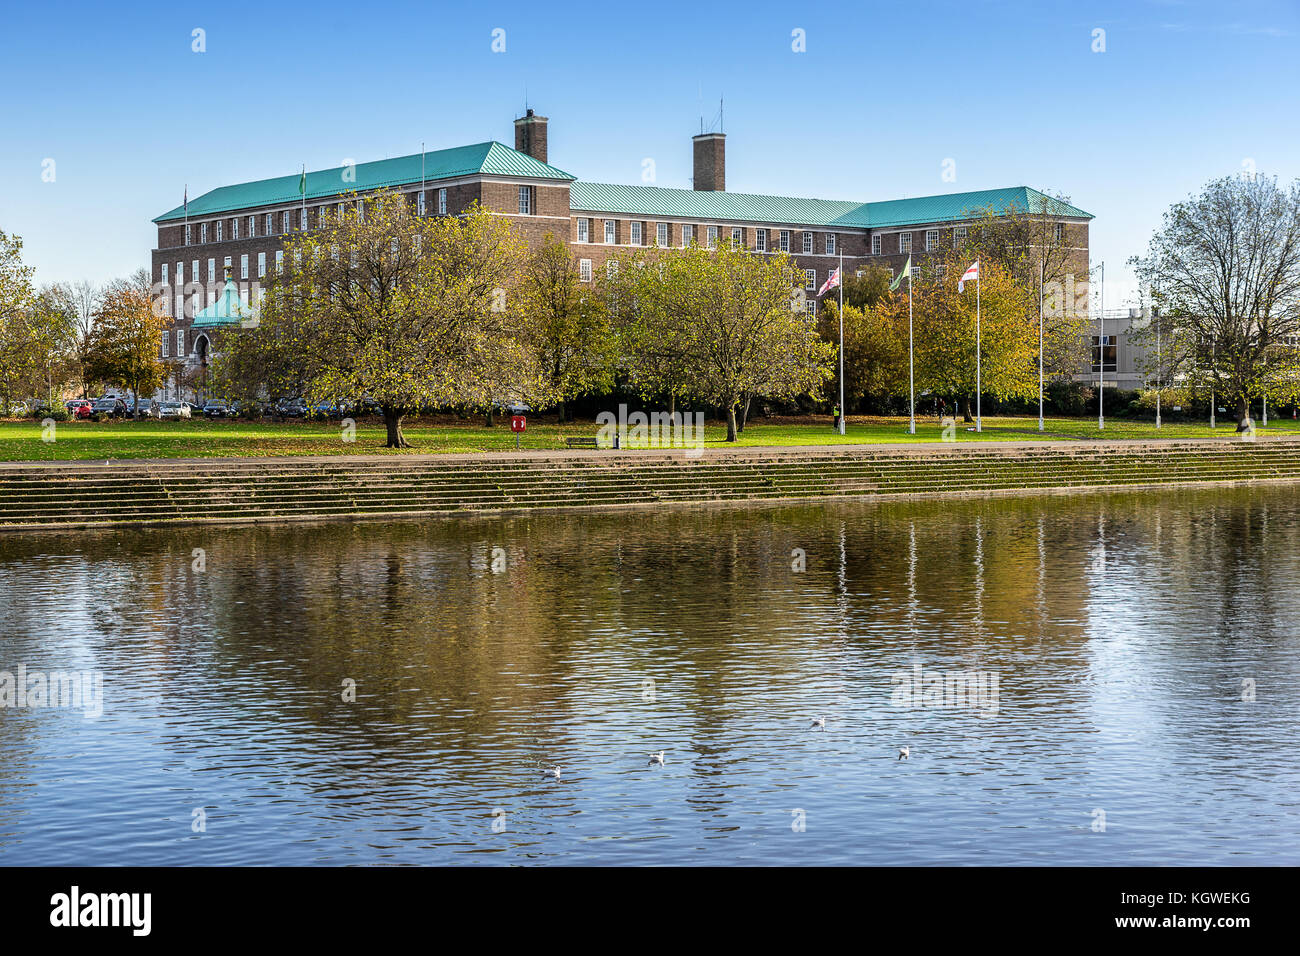 County Hall in Nottingham - Stock Image